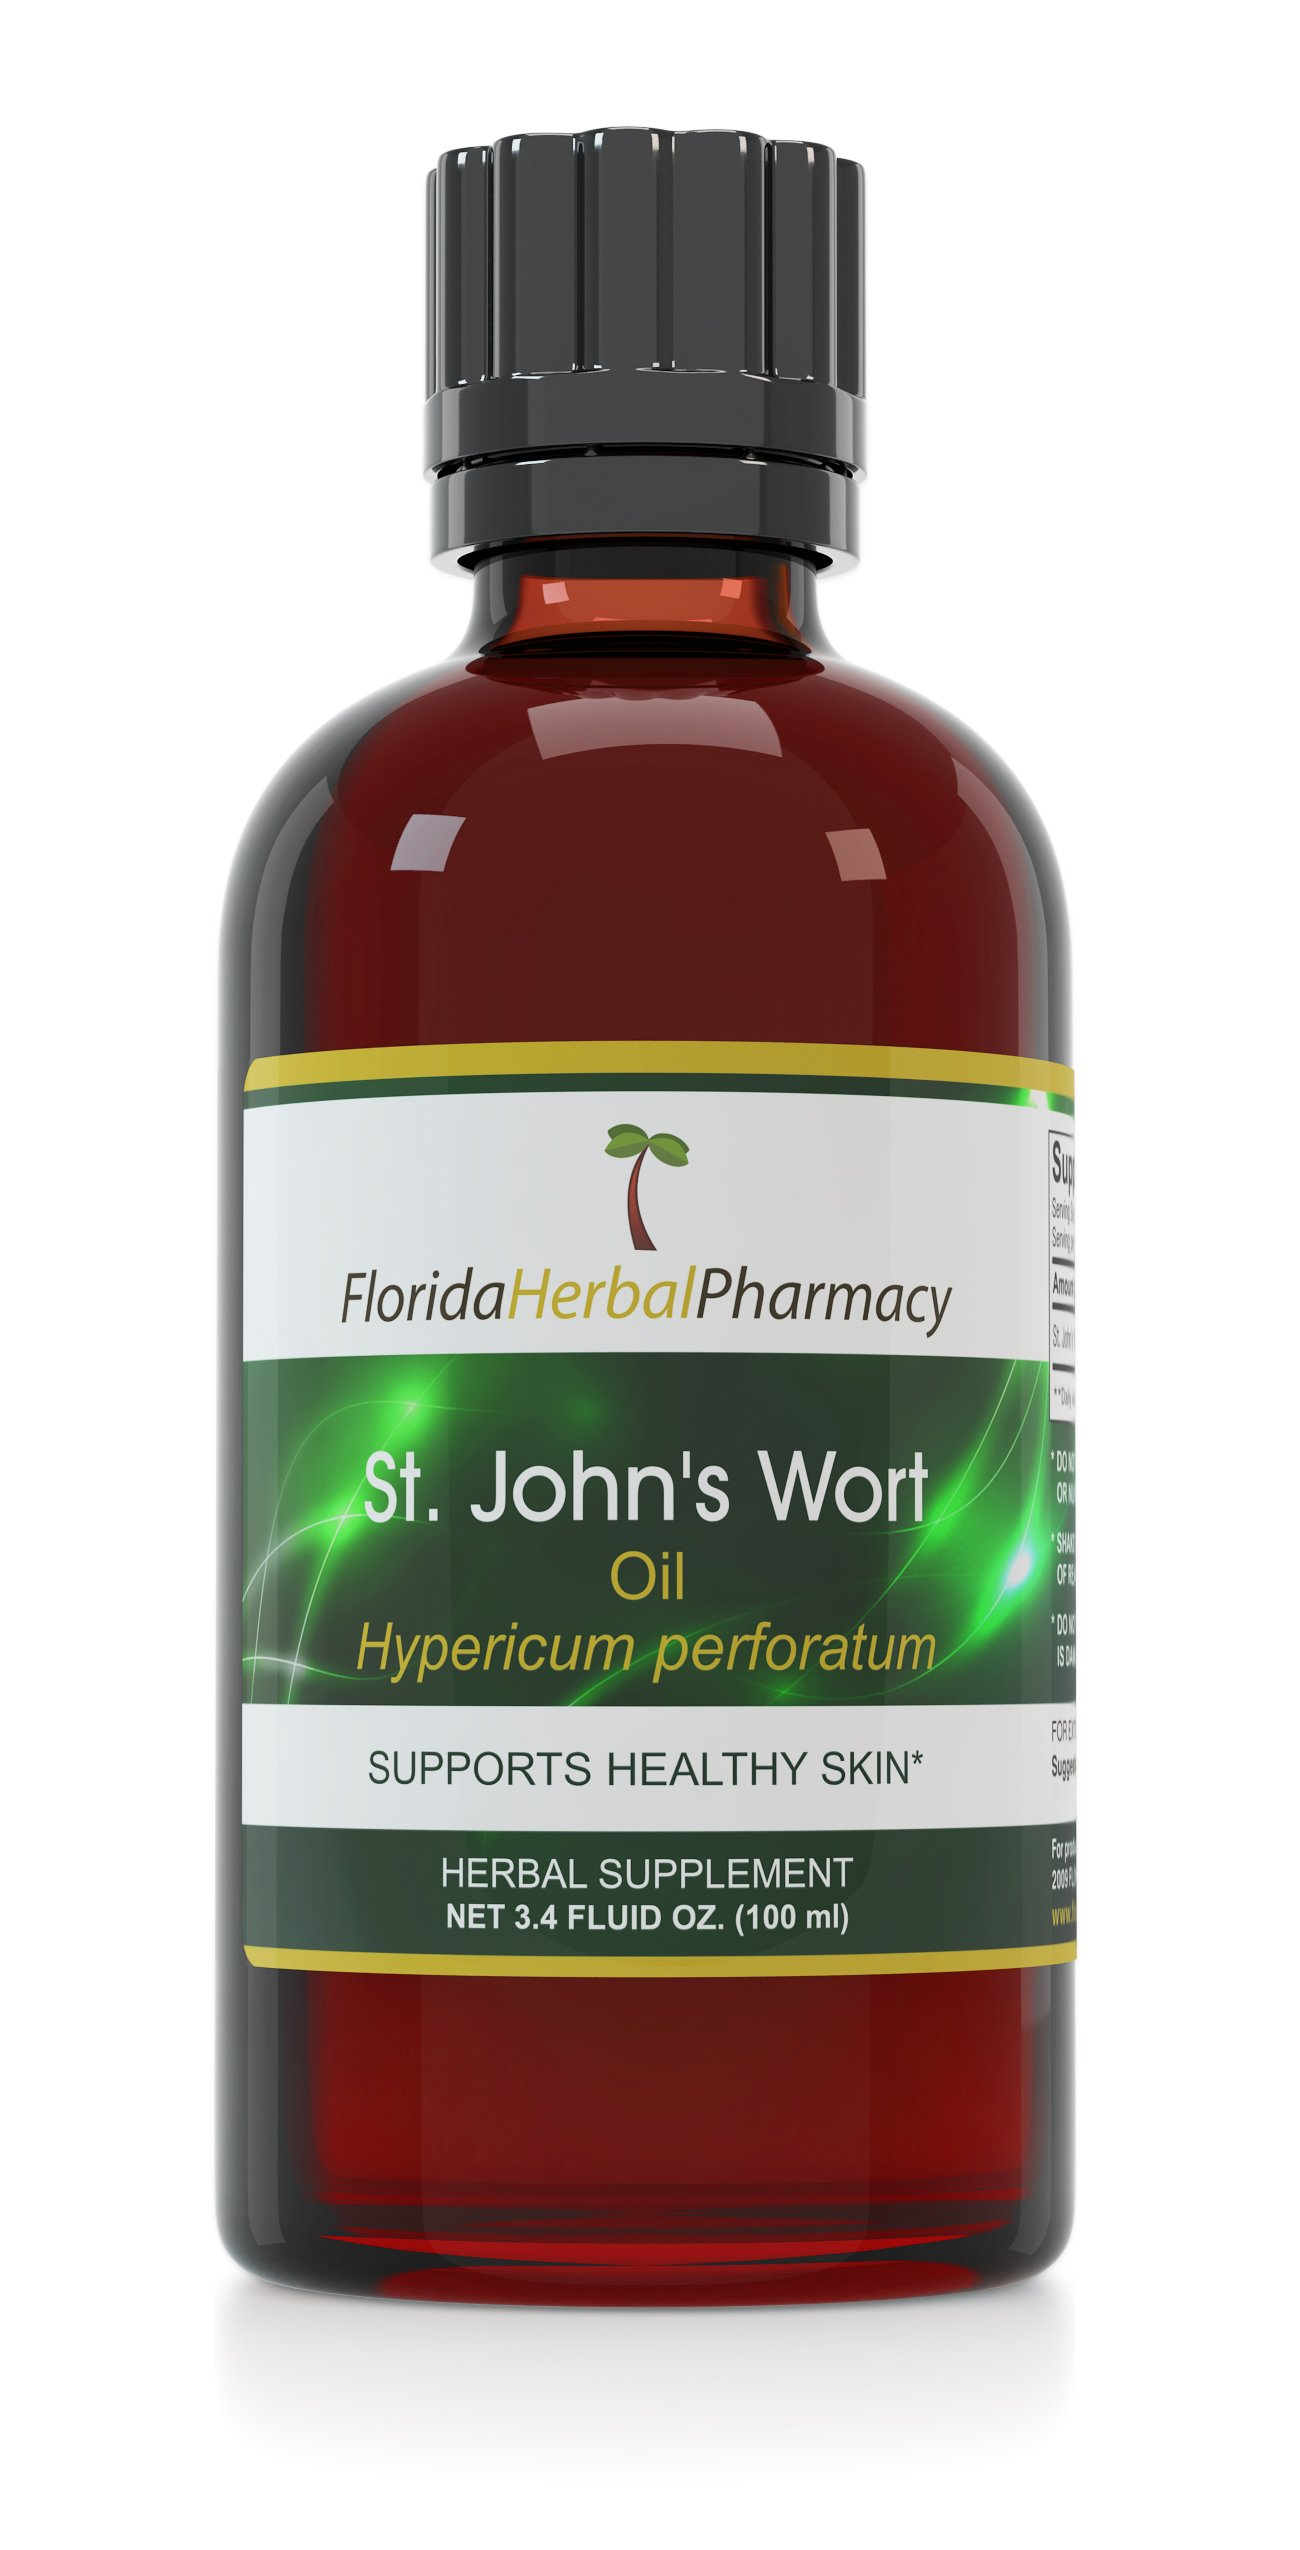 Florida Herbal Pharmacy, St. John's Wort Oil 3.4 oz.